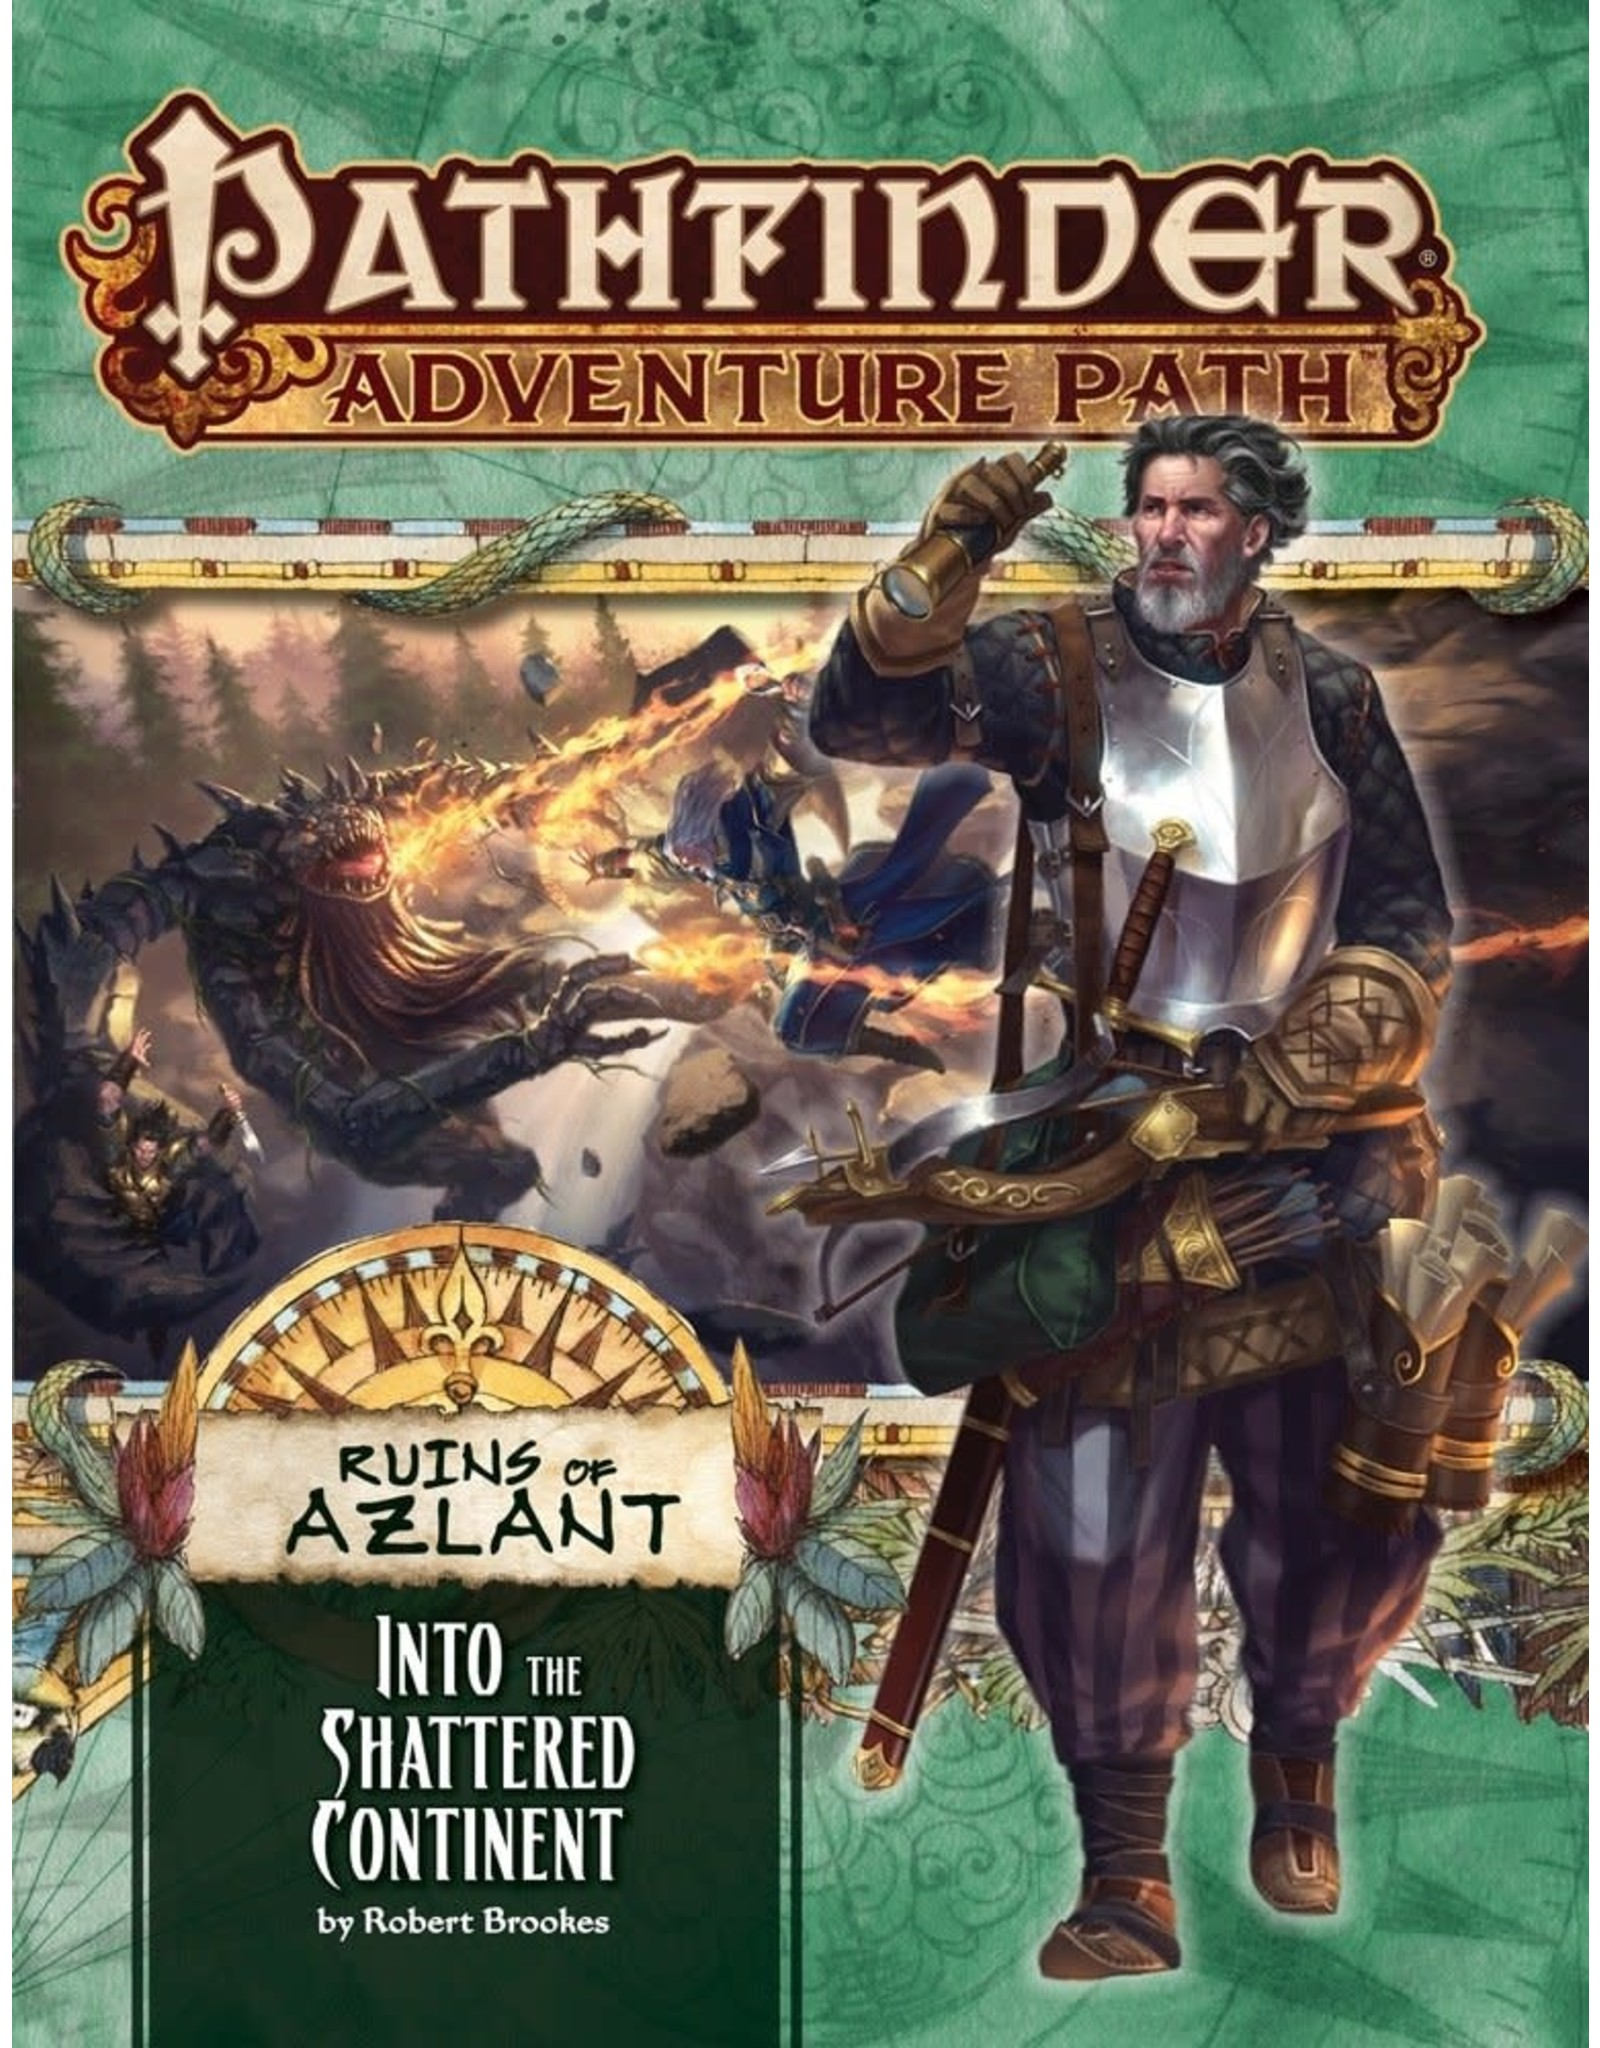 Pathfinder Adventure Path: Ruins of Azlant 2 Into the Shattered Continent